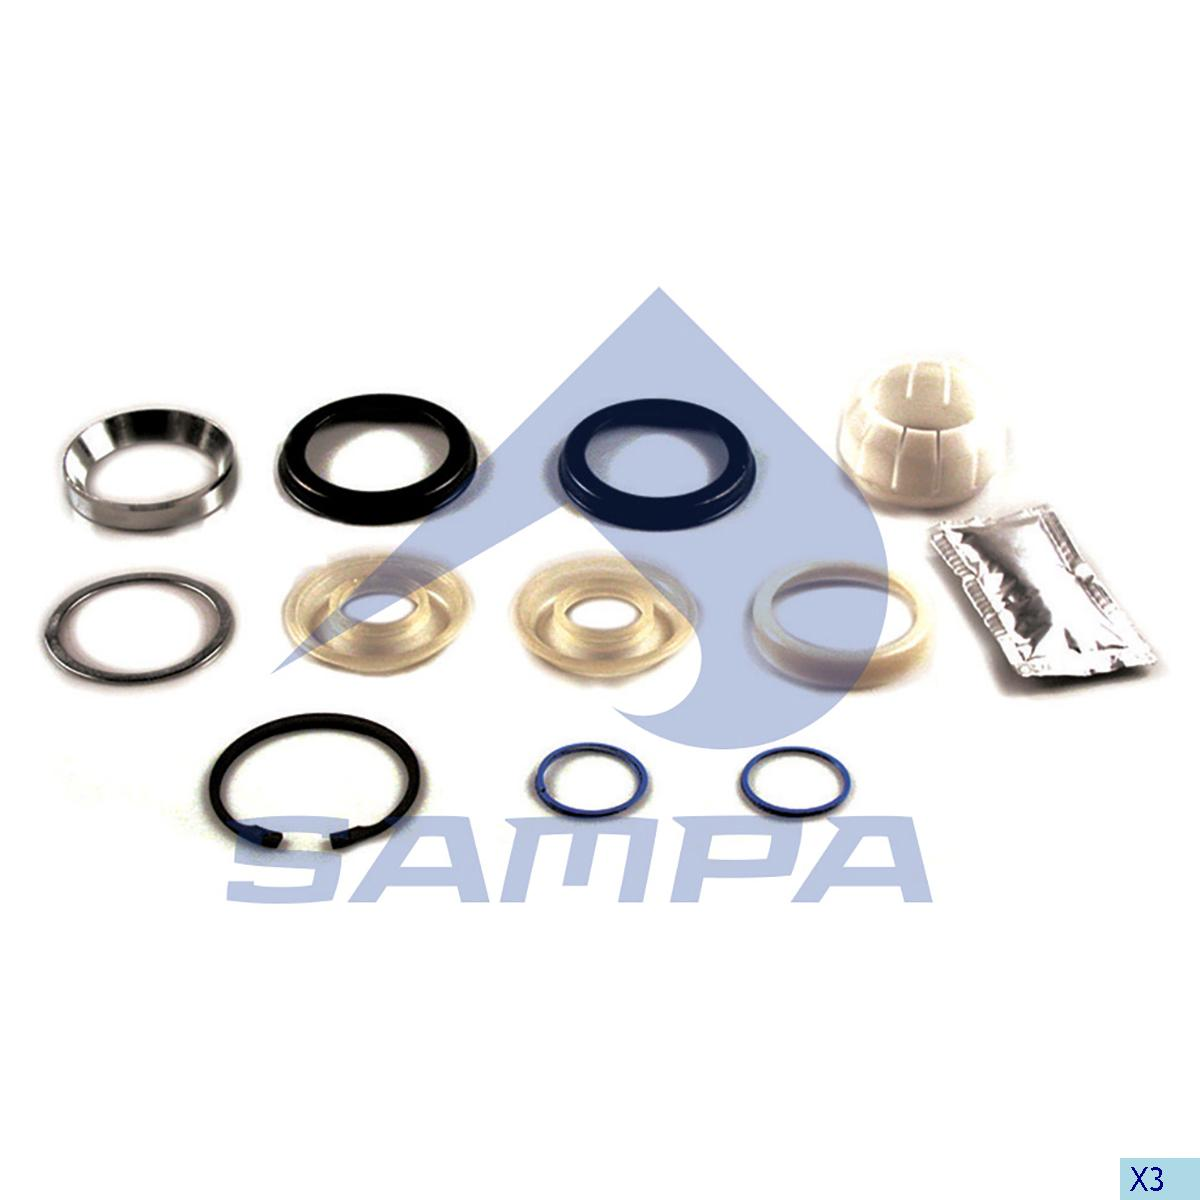 Repair Kit, Axle Rod, R.V.I., Suspension